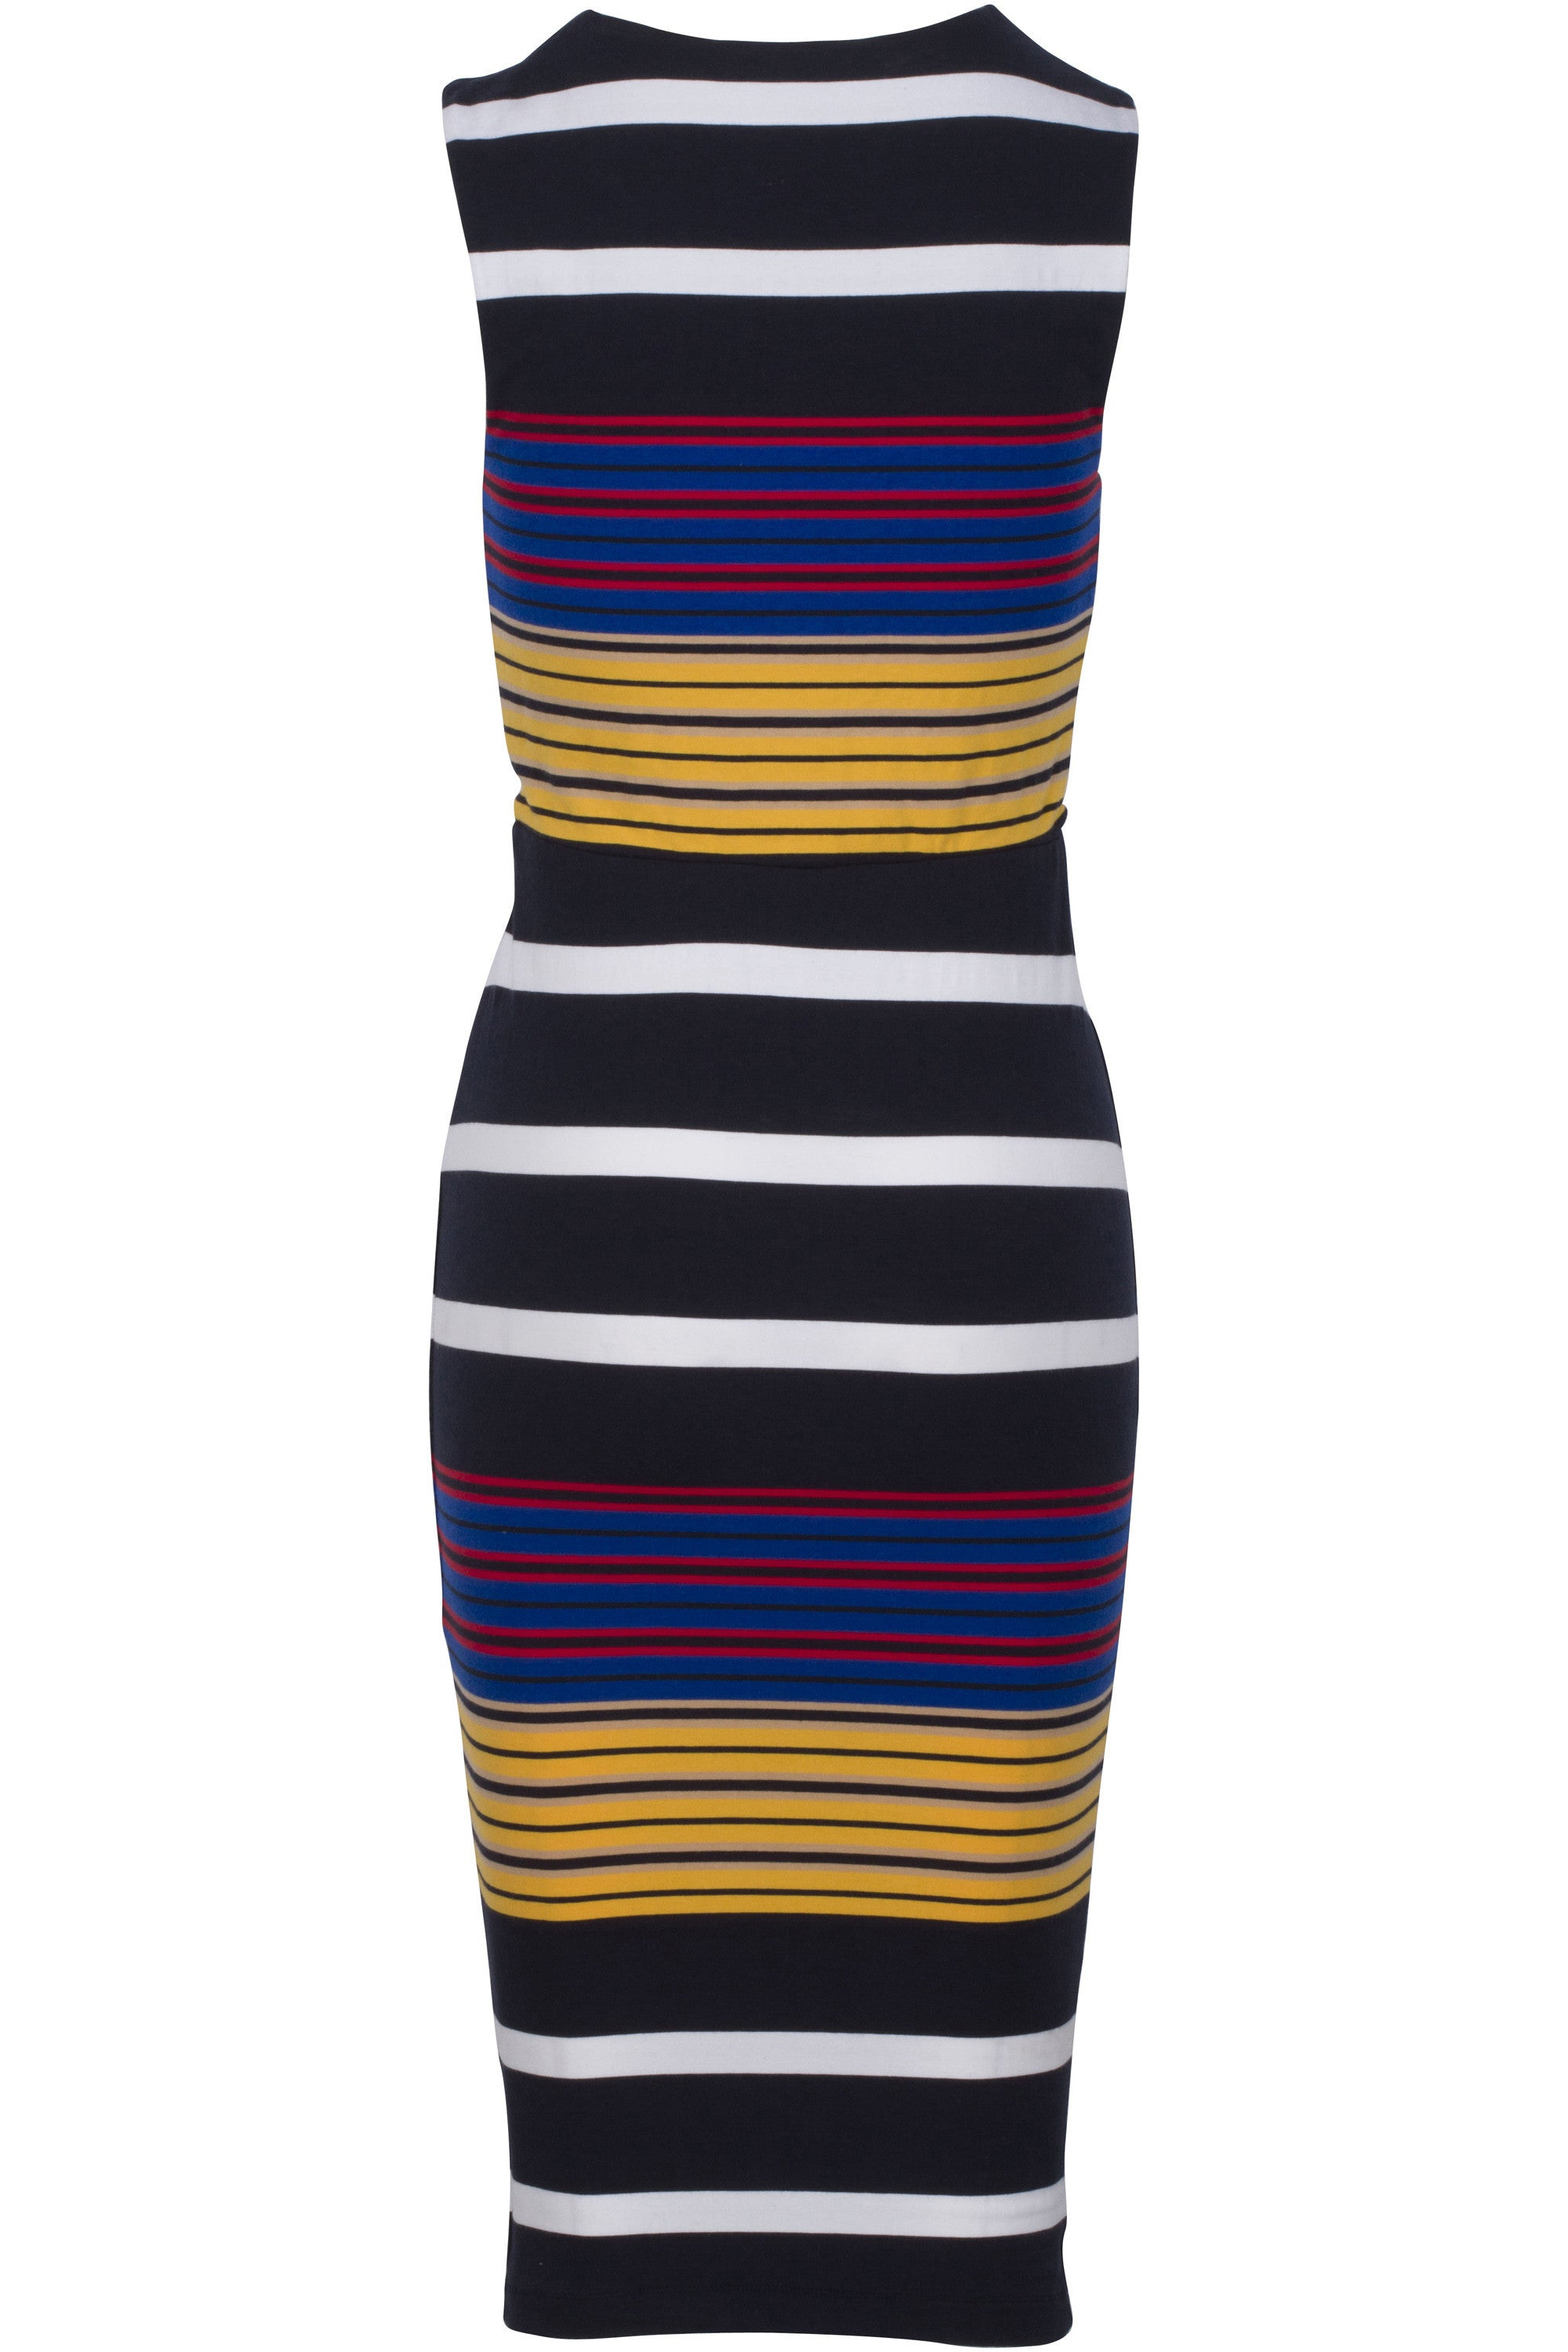 STRIPE COTTON BLEND DRESS DRESSES by KENDALL + KYLIE